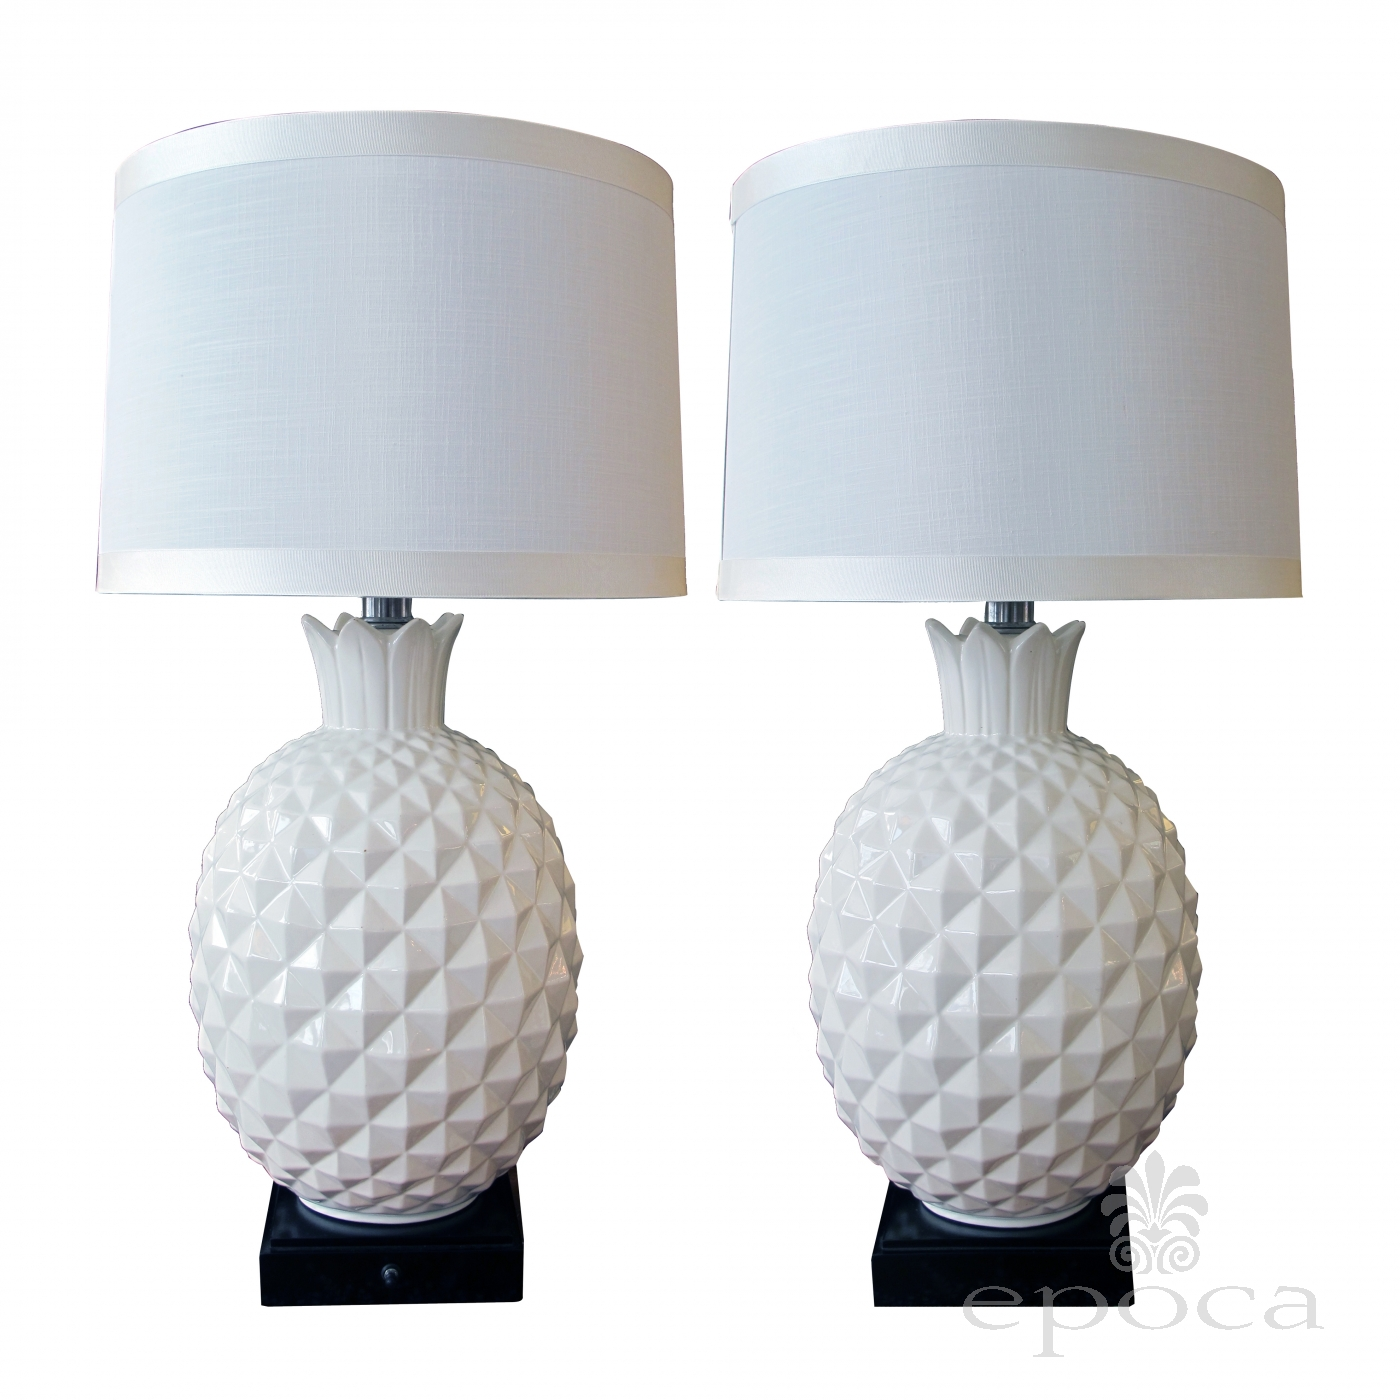 A Robust And Large Scaled Pair Of Italian 1960 S White